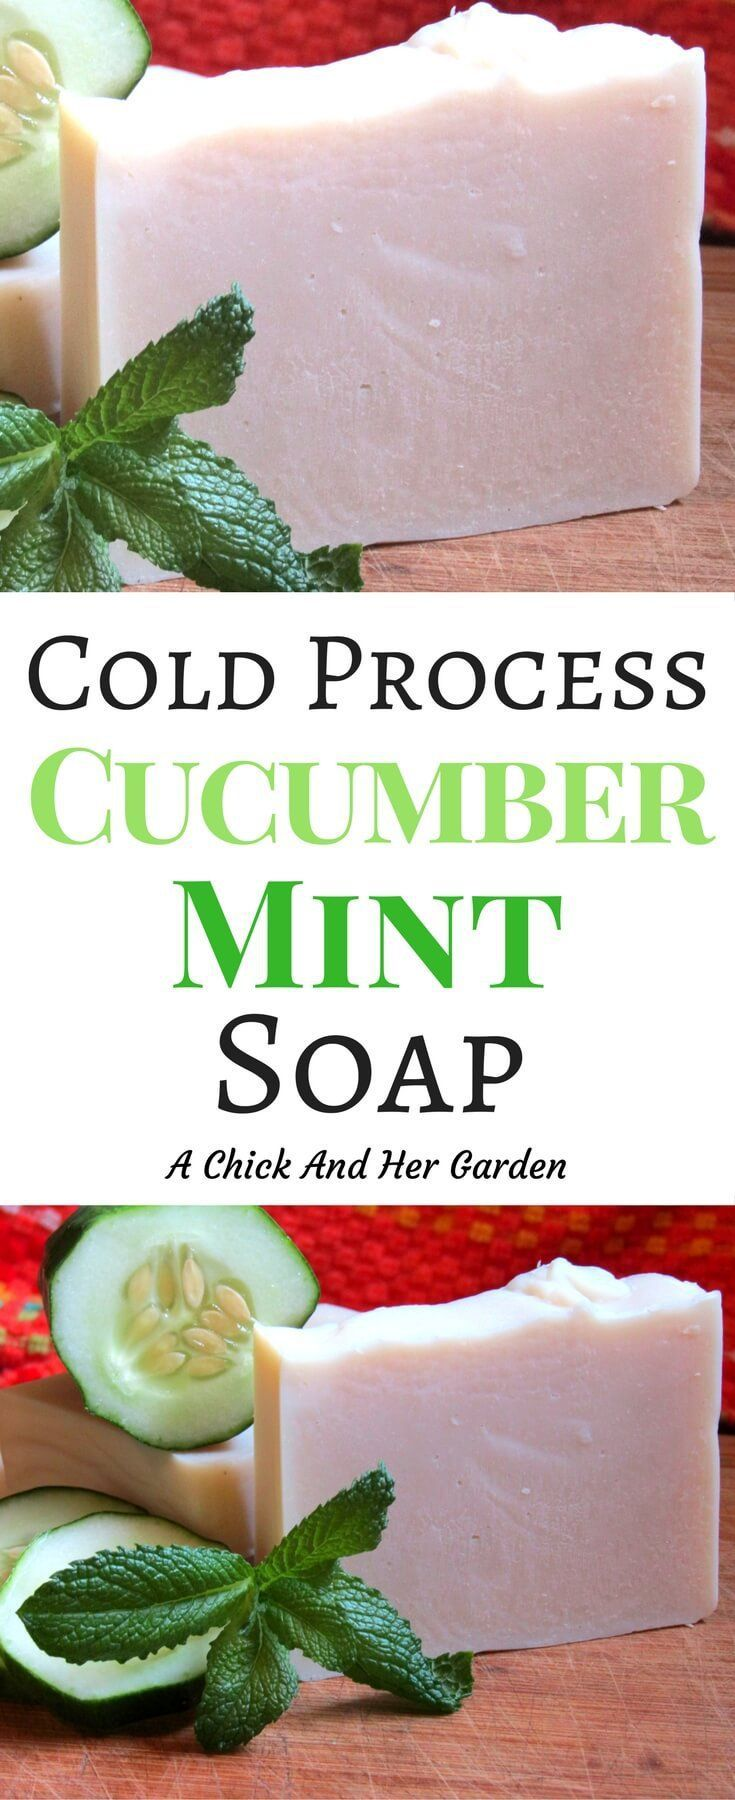 Cold process soap used to scare me! Until I tried my hand at it with this recipe! For a refreshing summer soap try cucumber mint soap! #homesteading #soaprecipes #naturalsoap #healthandbeauty